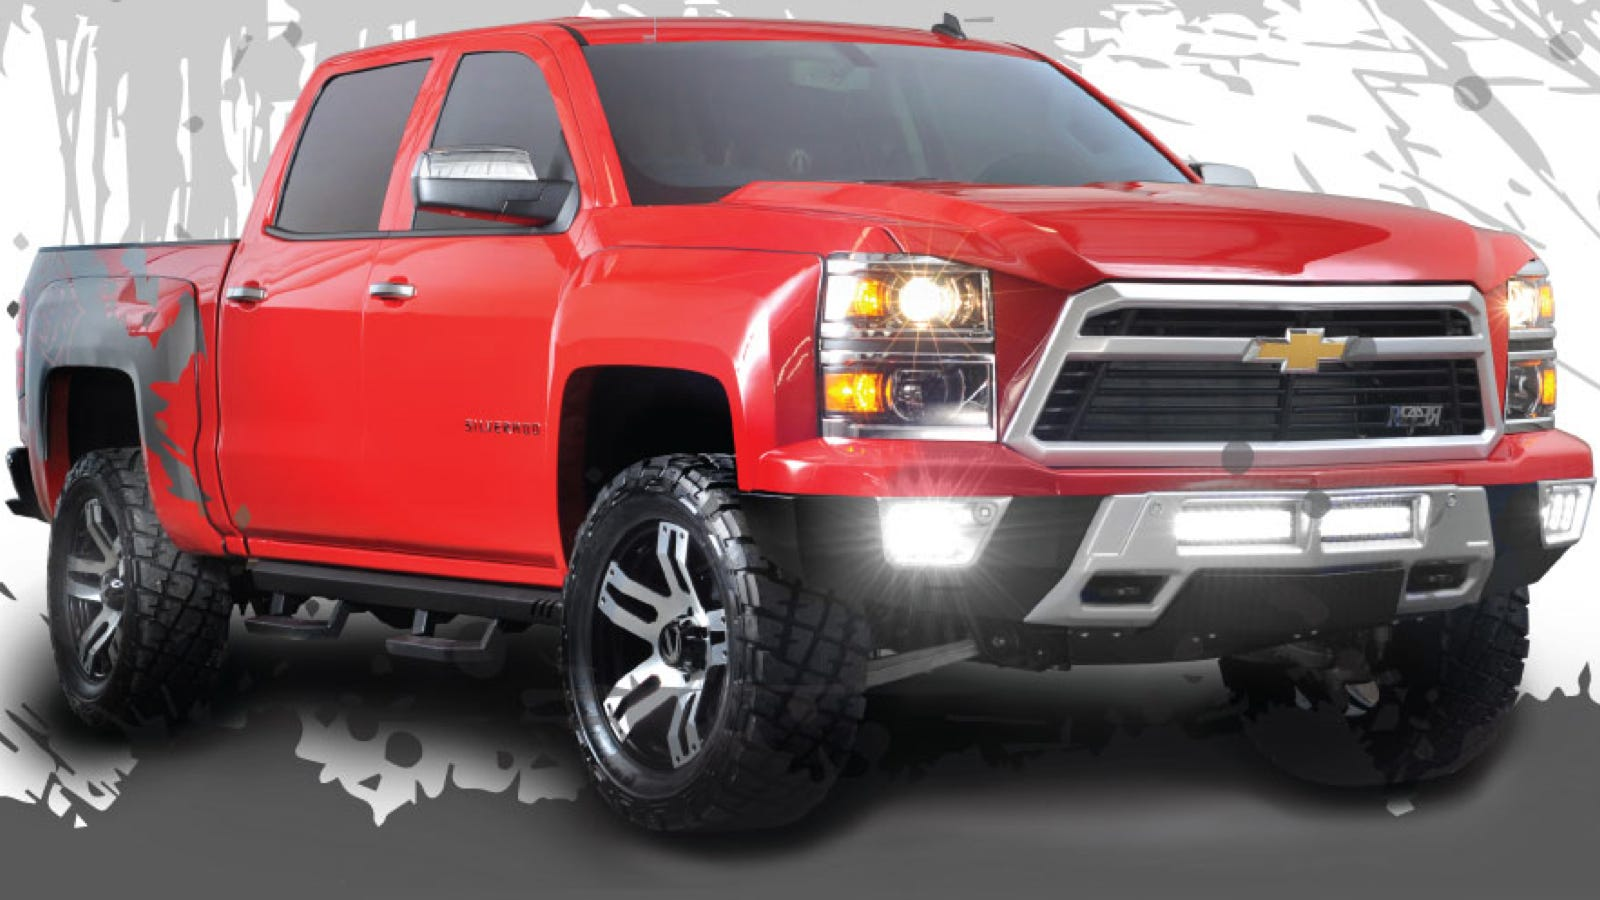 Chevy Reaper Price >> Is The Chevrolet Reaper A Real Raptor Killer Or Dealership ...